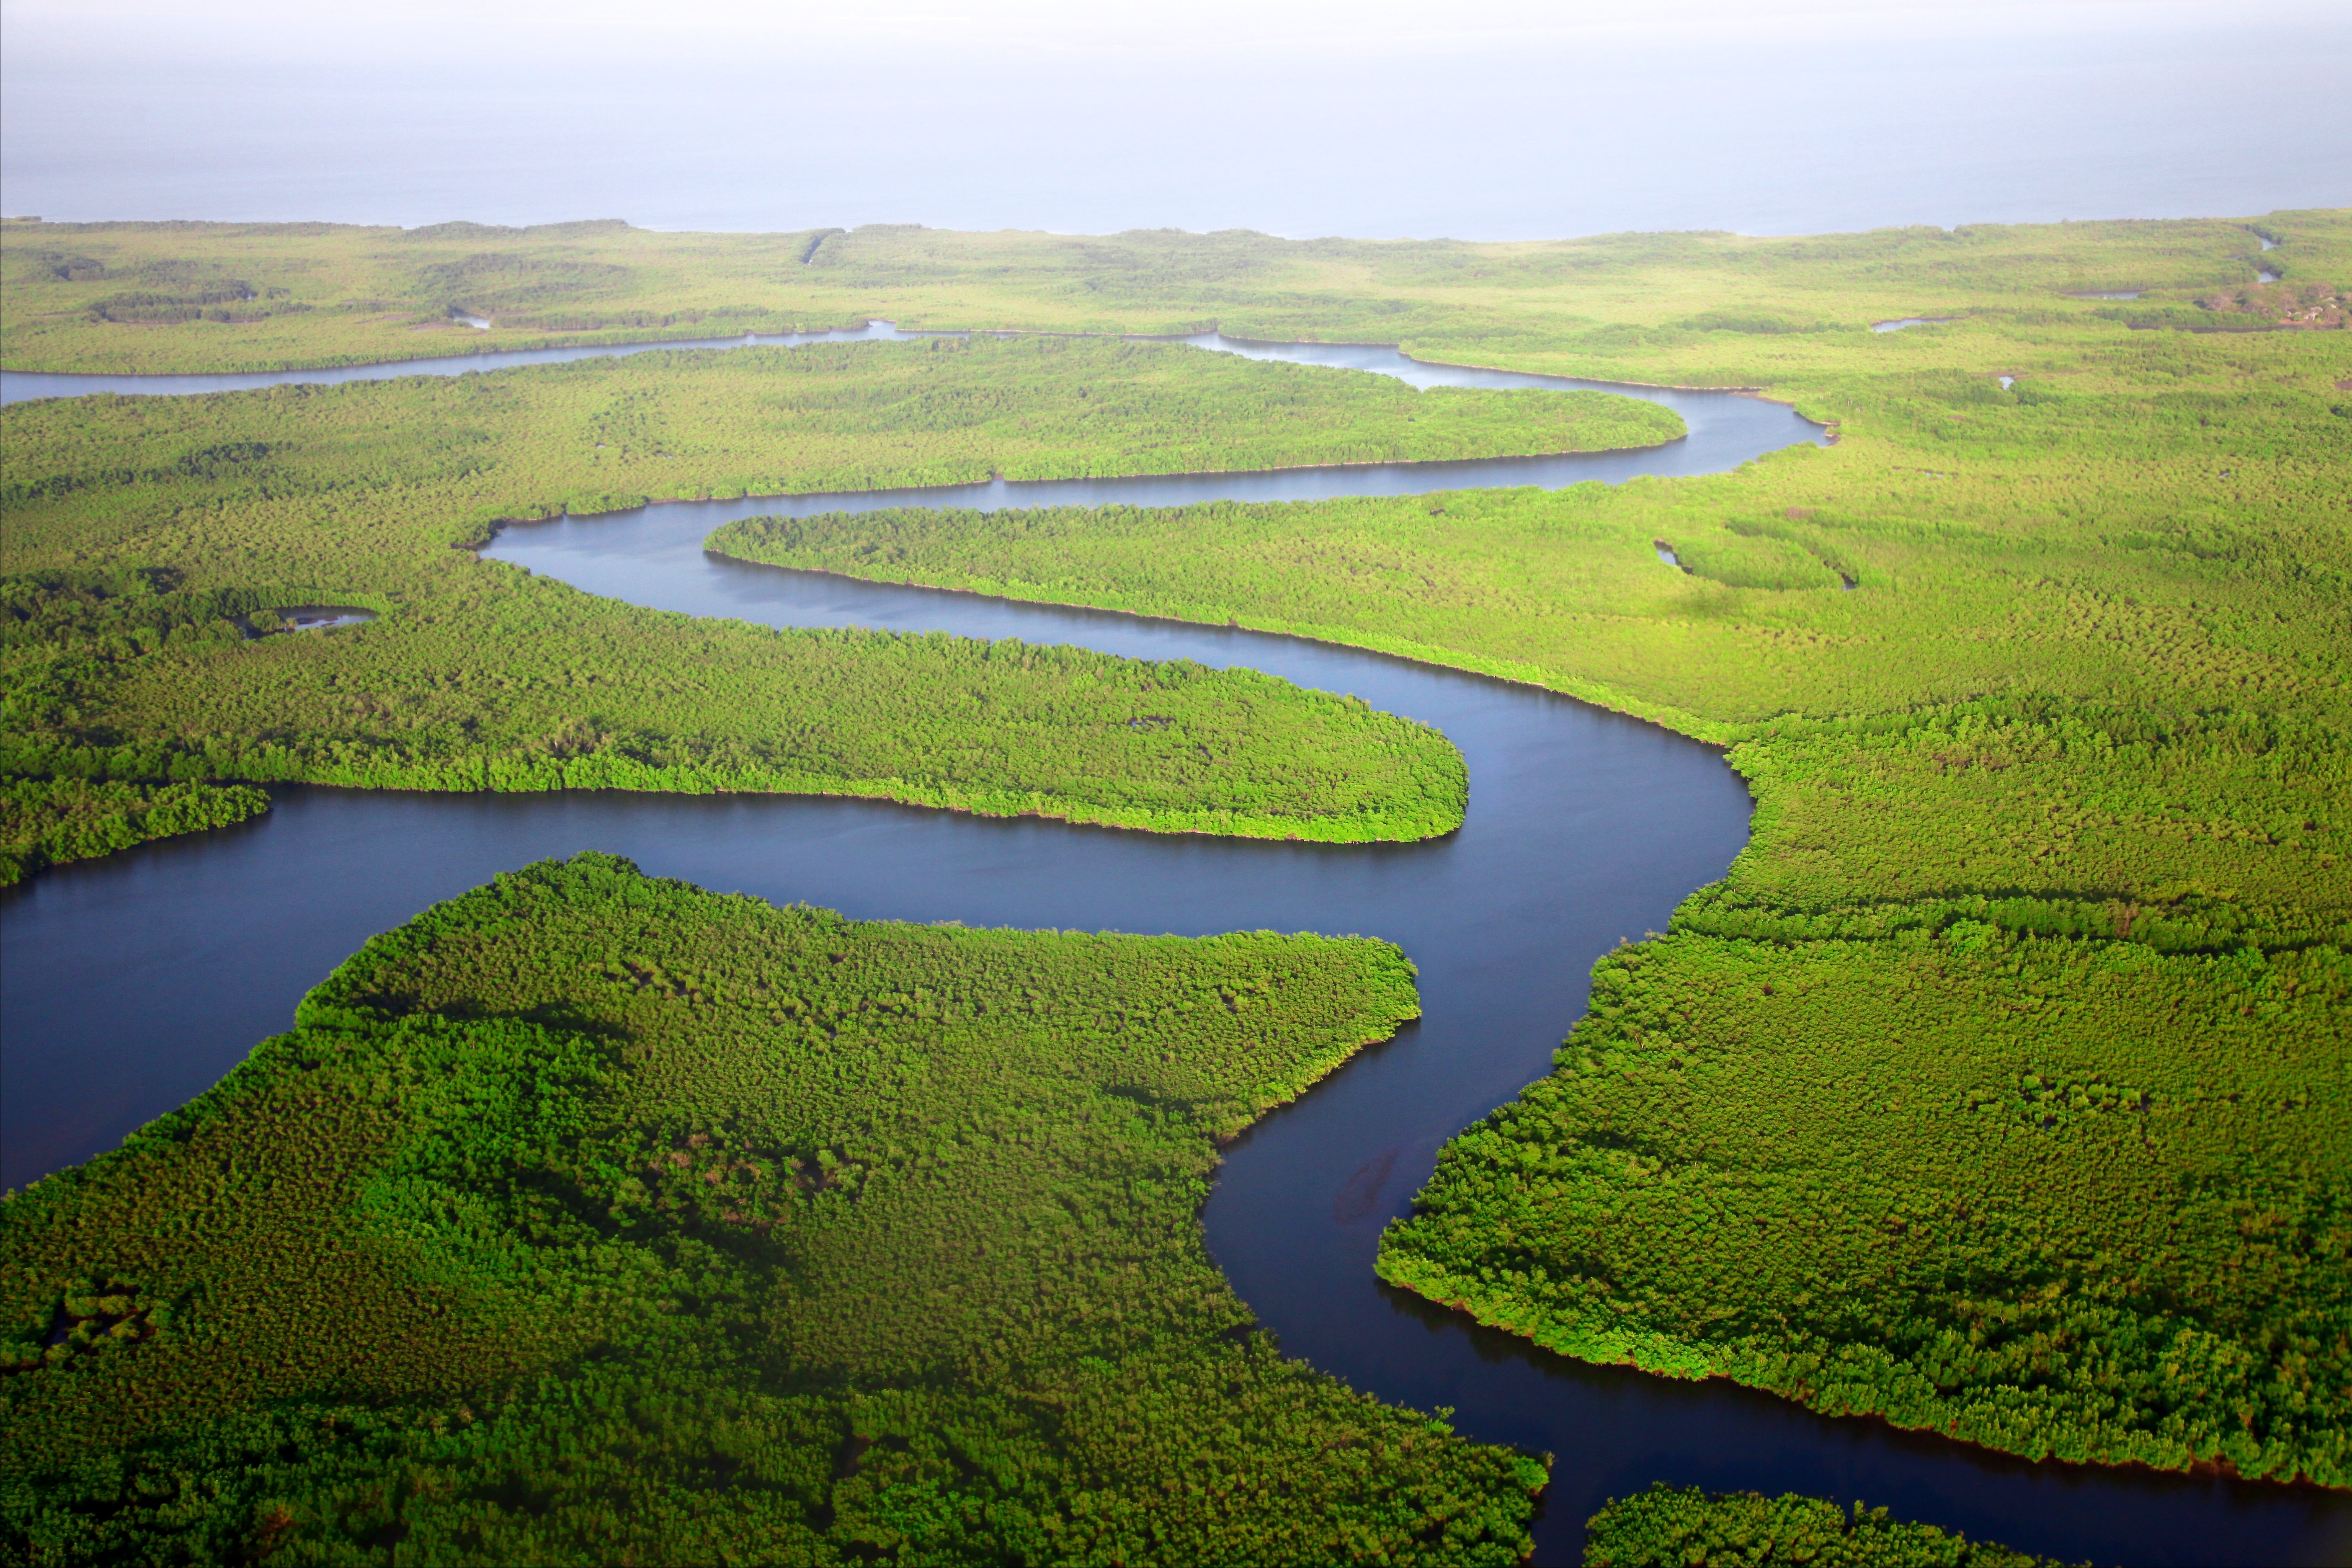 A drone shot of a meandering river surrounded by green forests in The Gambia